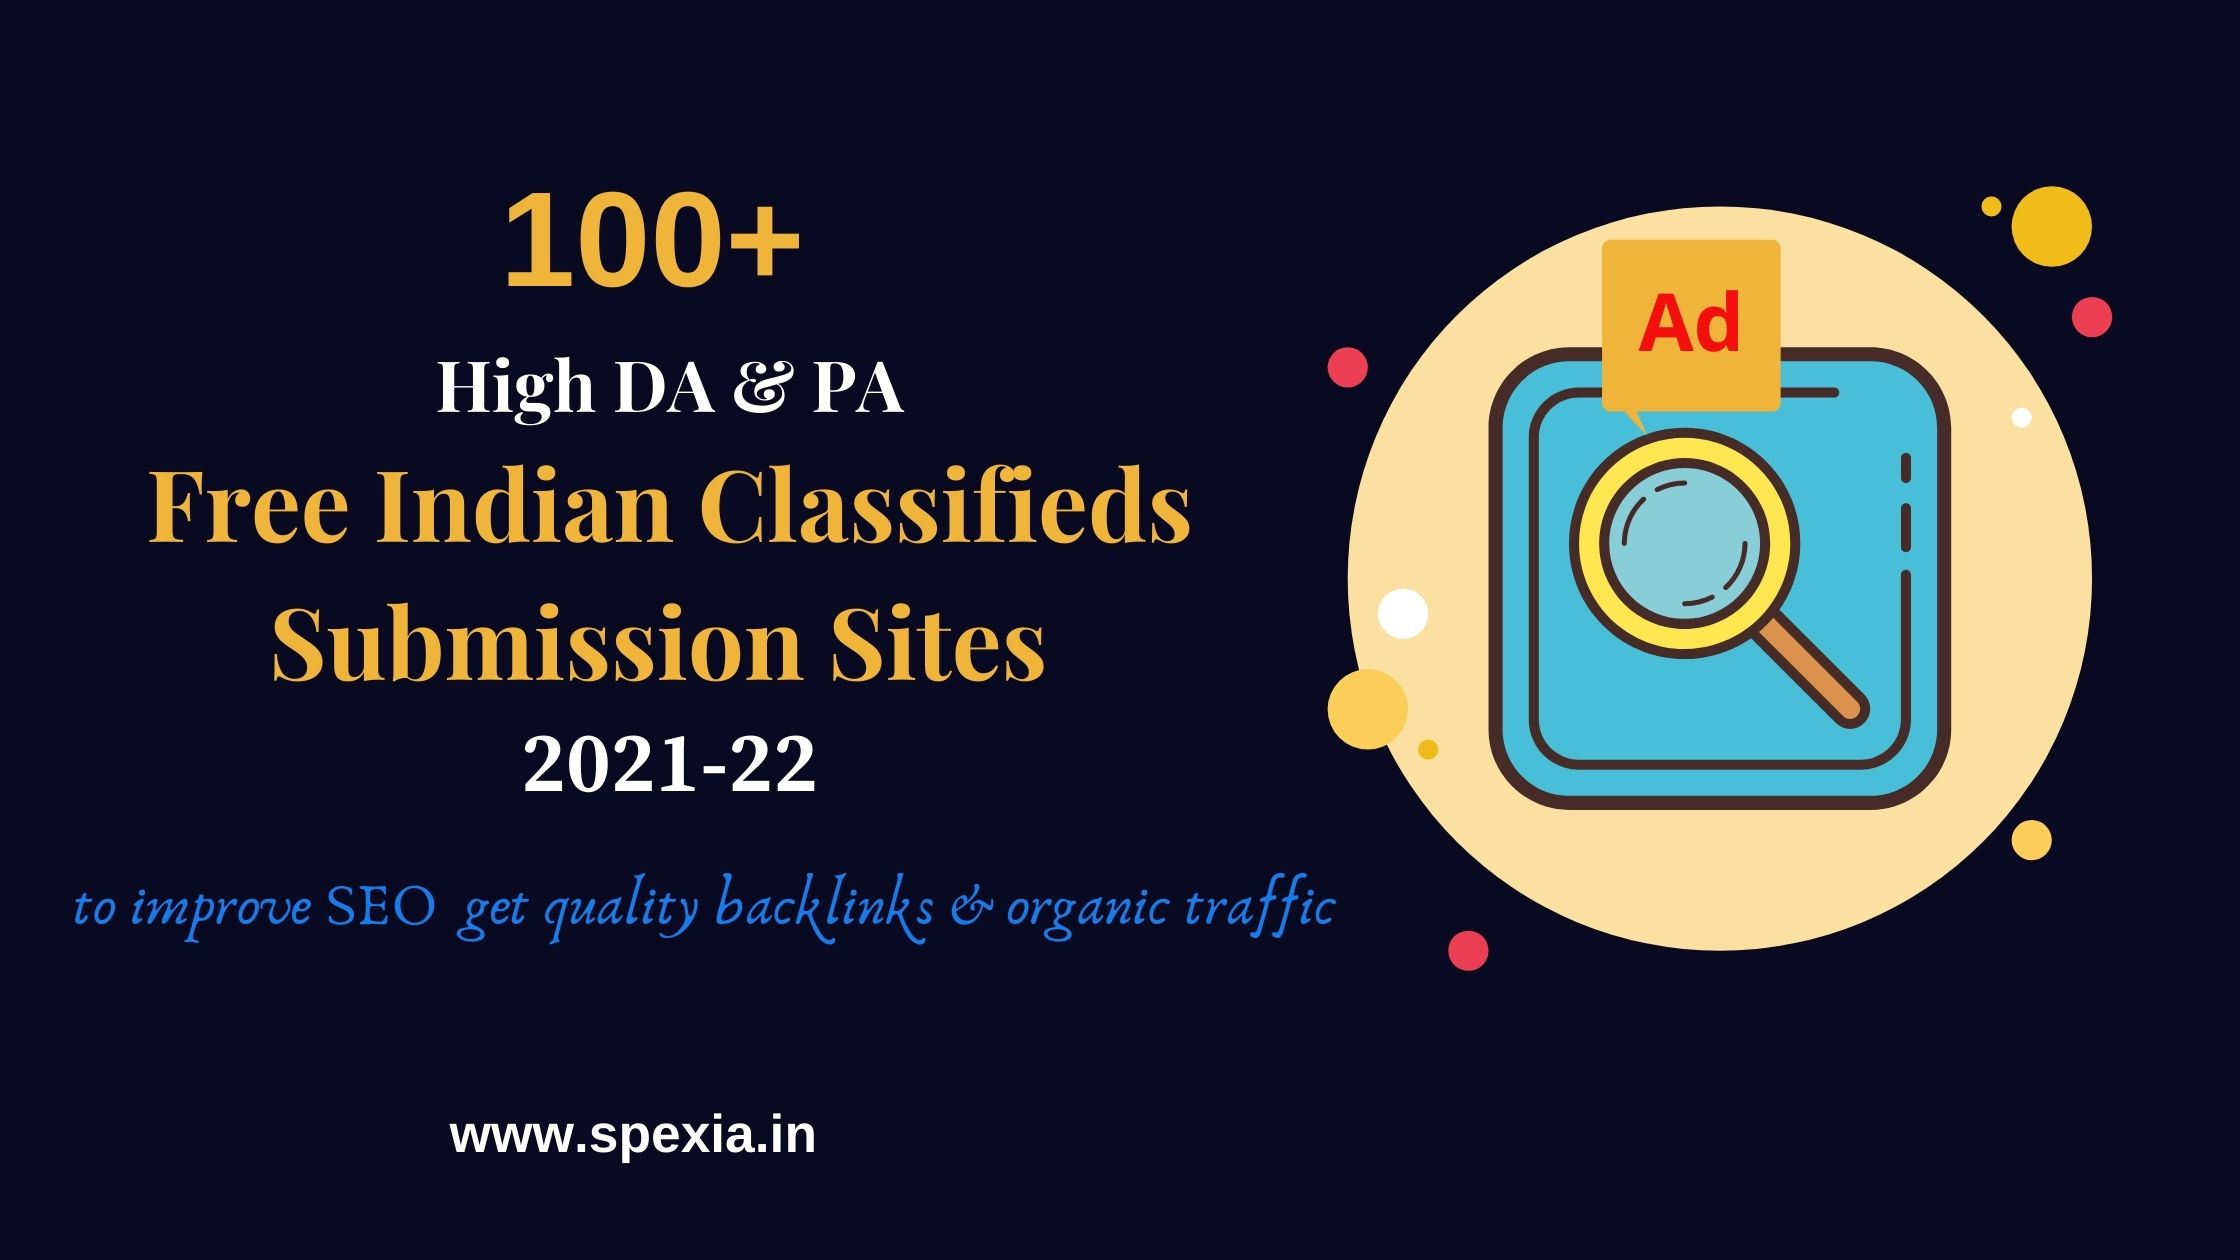 Free Indian Classifieds Submission Sites